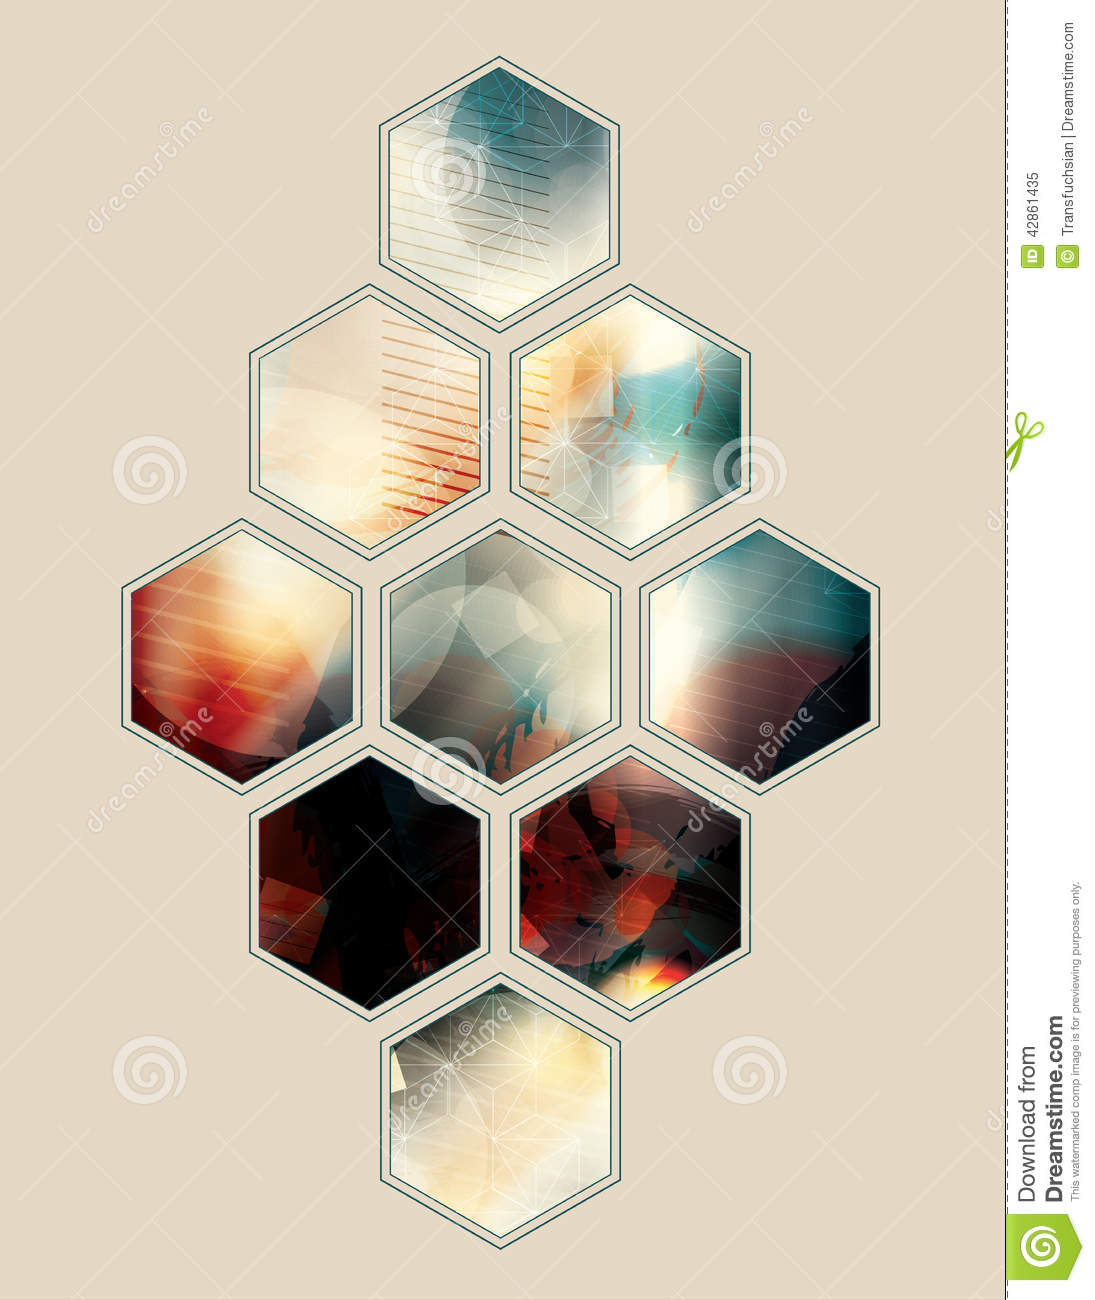 polygon shape abstract design - photo #10